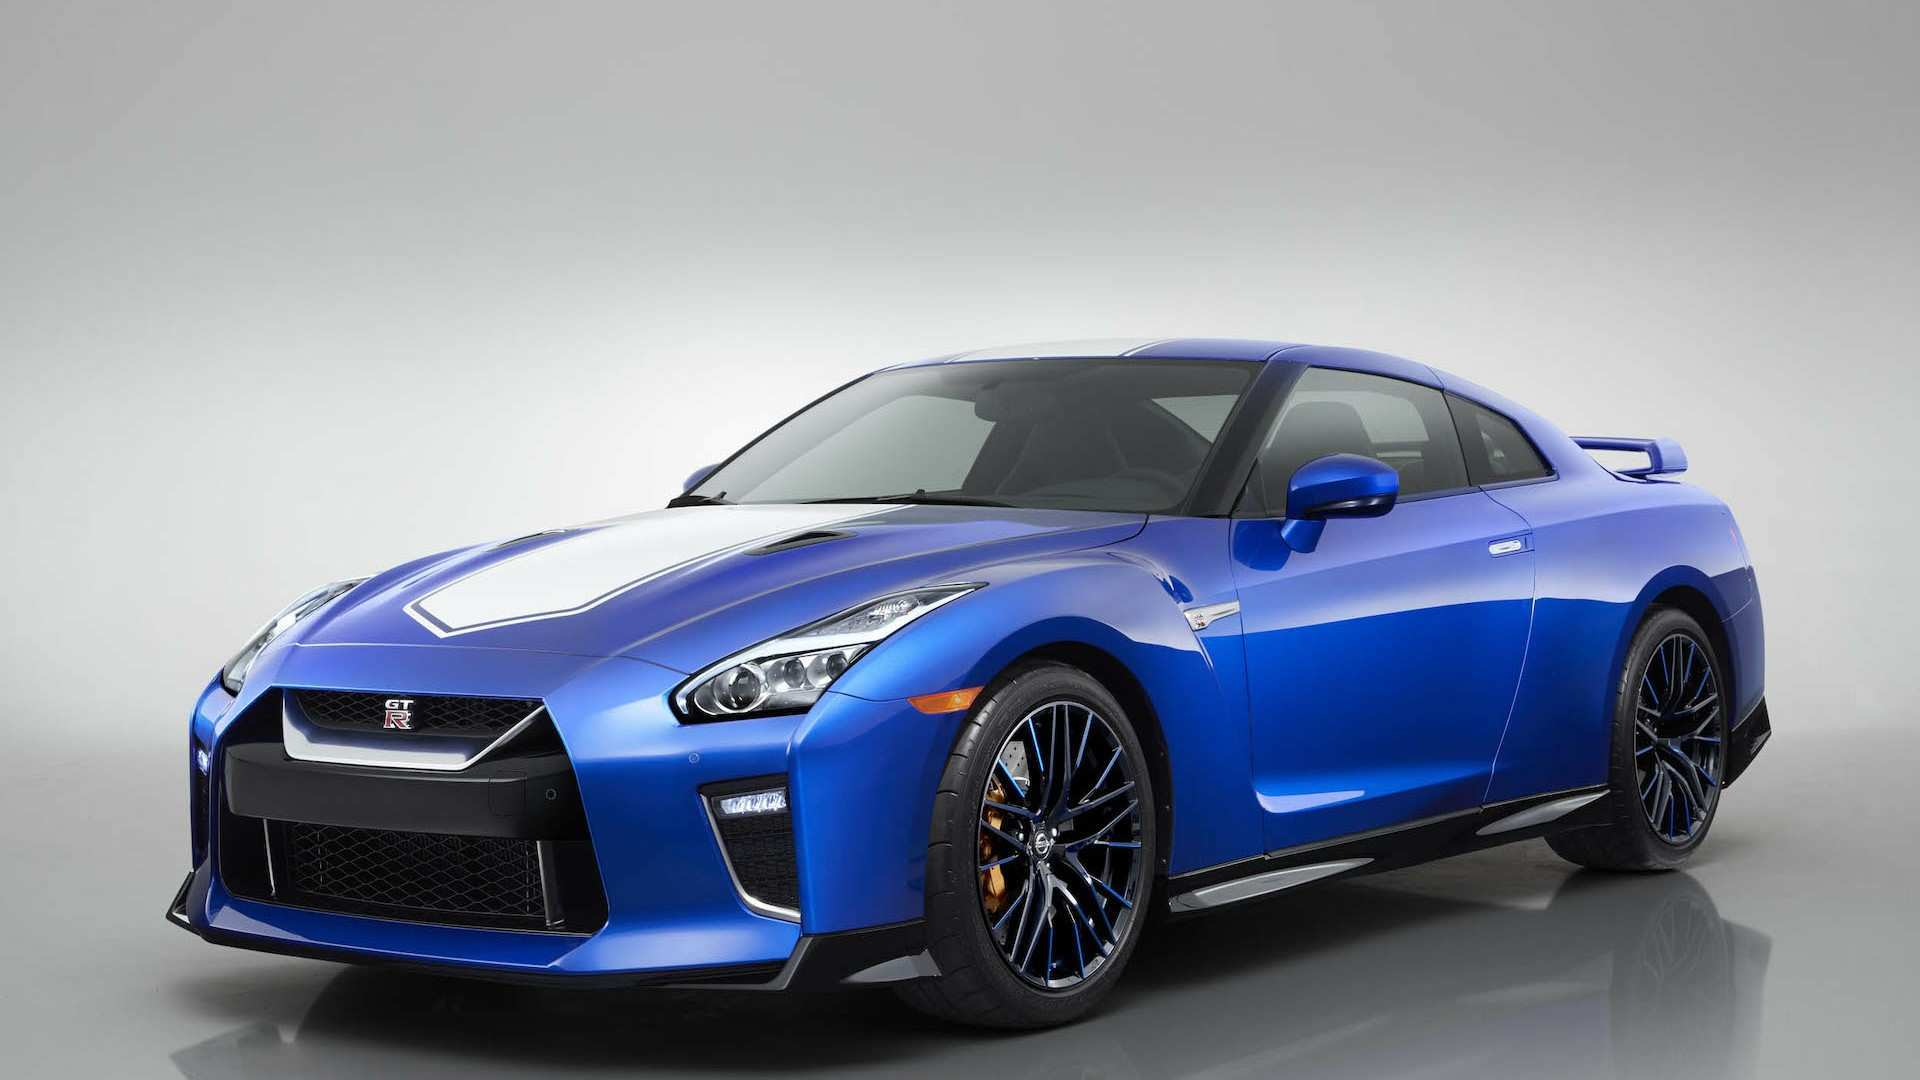 66 New 2020 Nissan Gt R Rumors